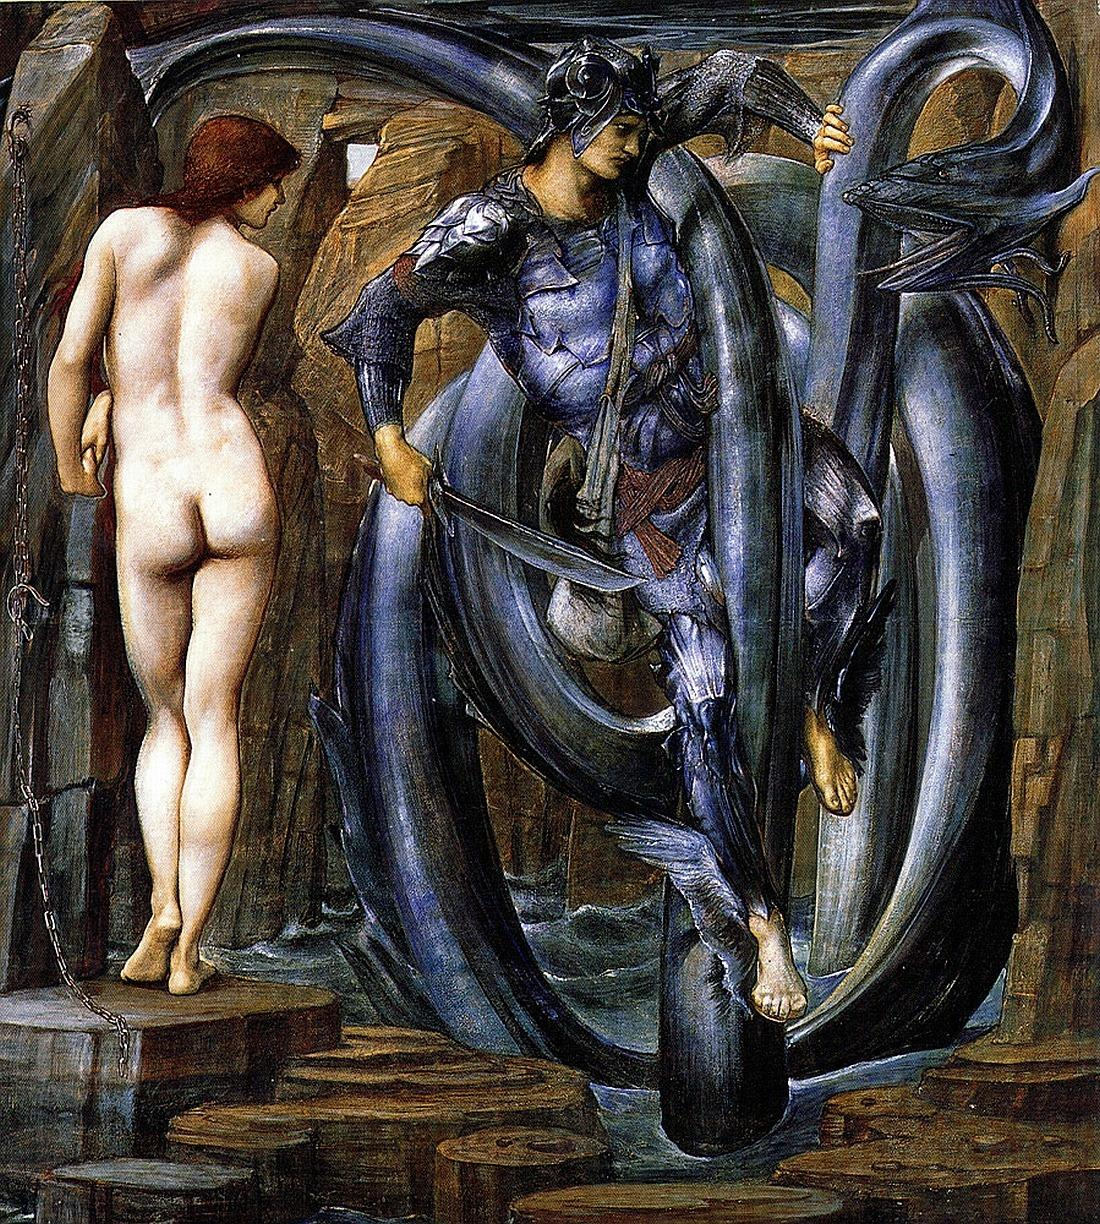 Gemälde von Edward Burne-Jones